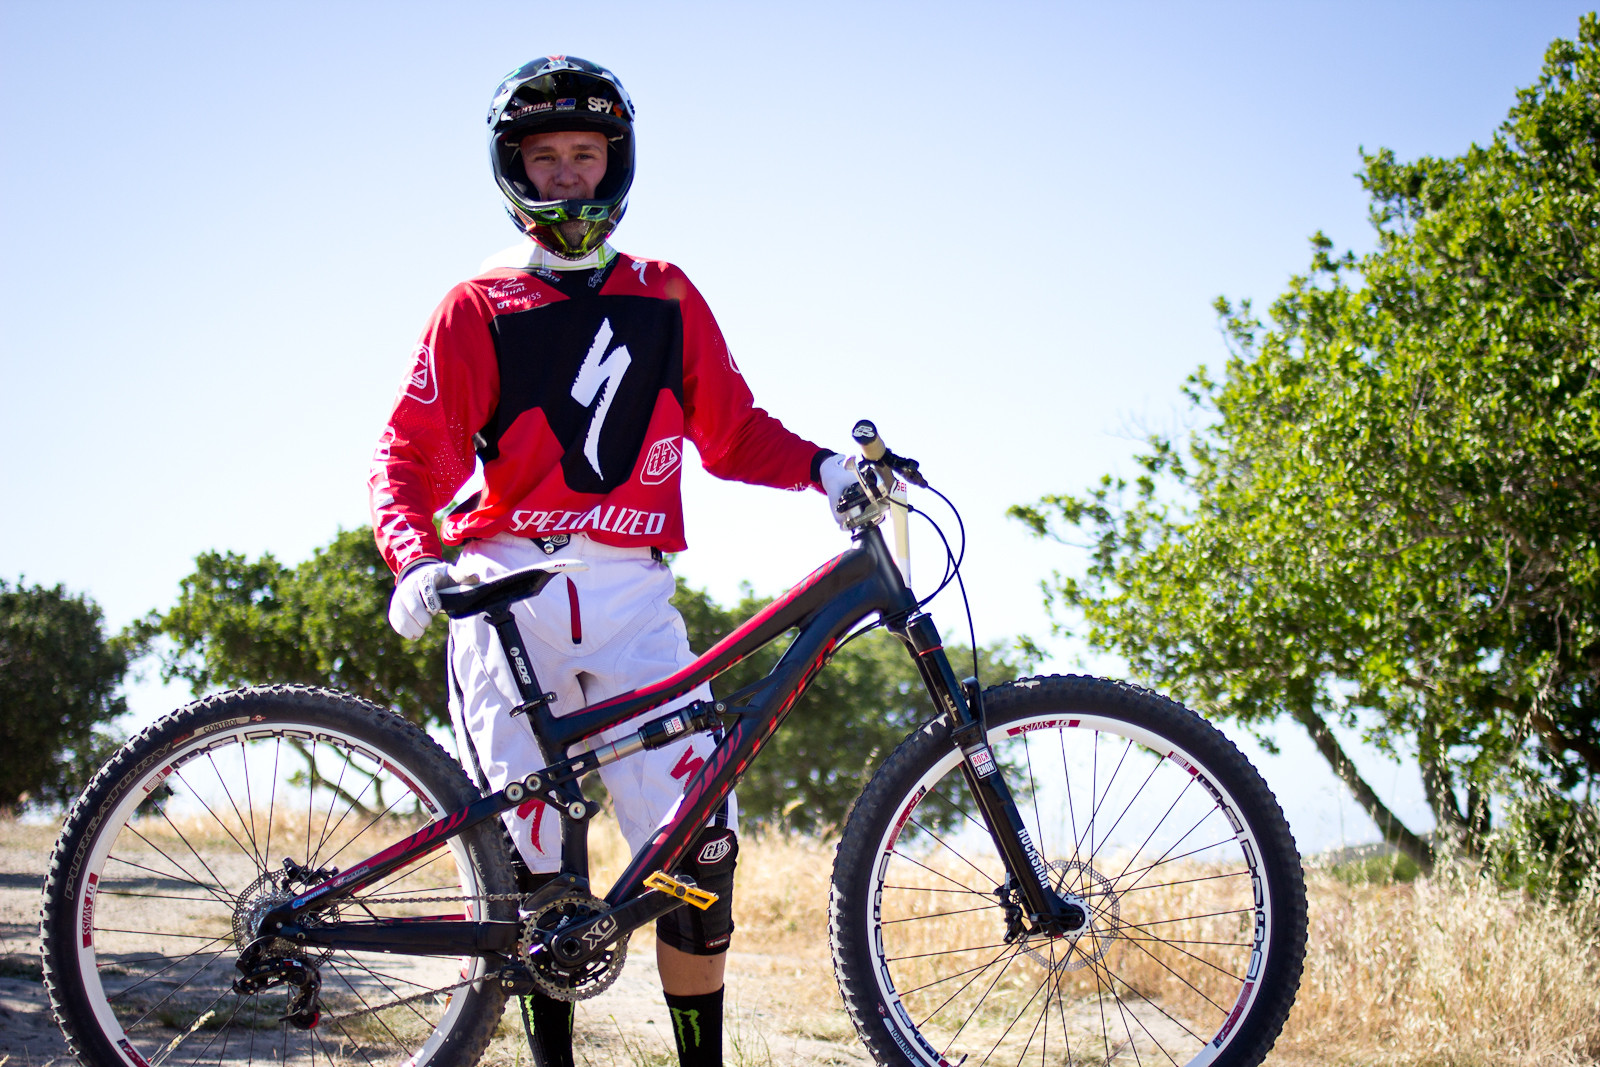 Troy Brosnan's 2014 Specialized Enduro SX Slalom Bike - 2013 Sea Otter Pro Slalom Bikes - Mountain Biking Pictures - Vital MTB